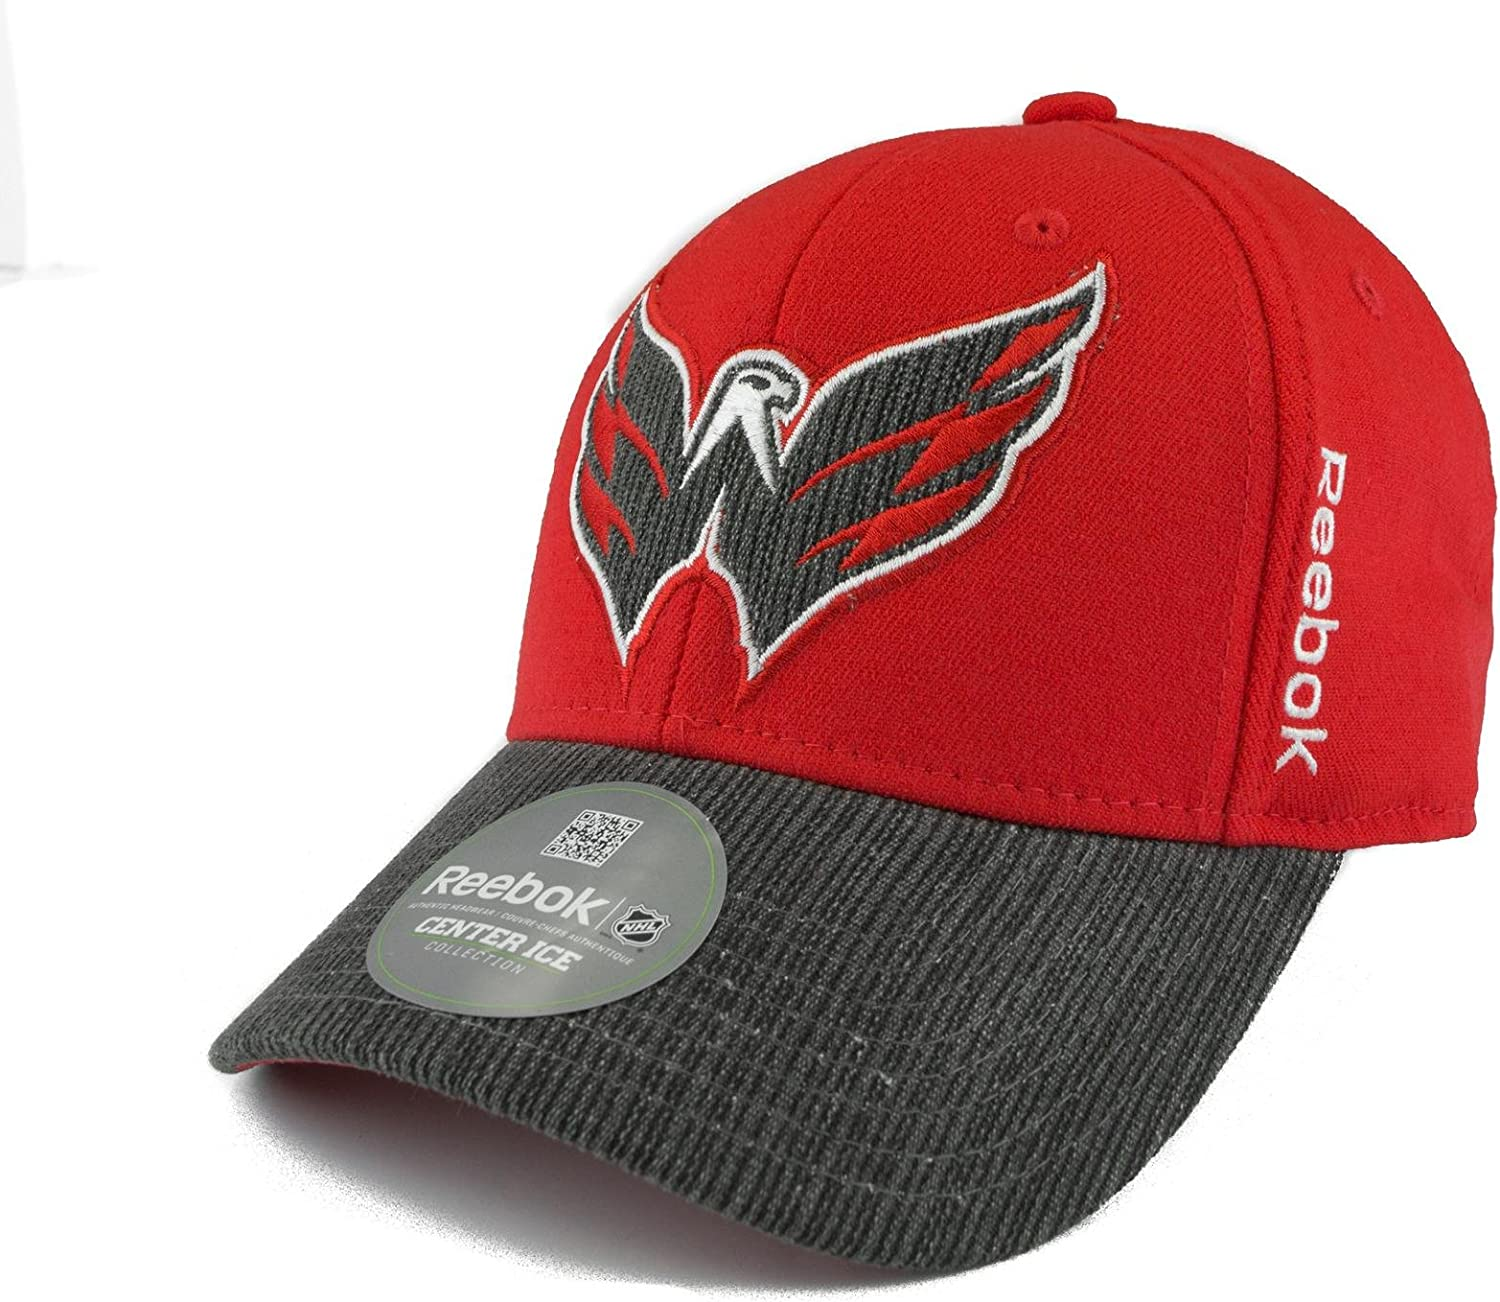 Reebok Washington Capitals Red Travel and Training Fitted Hat (Adult L/XL)